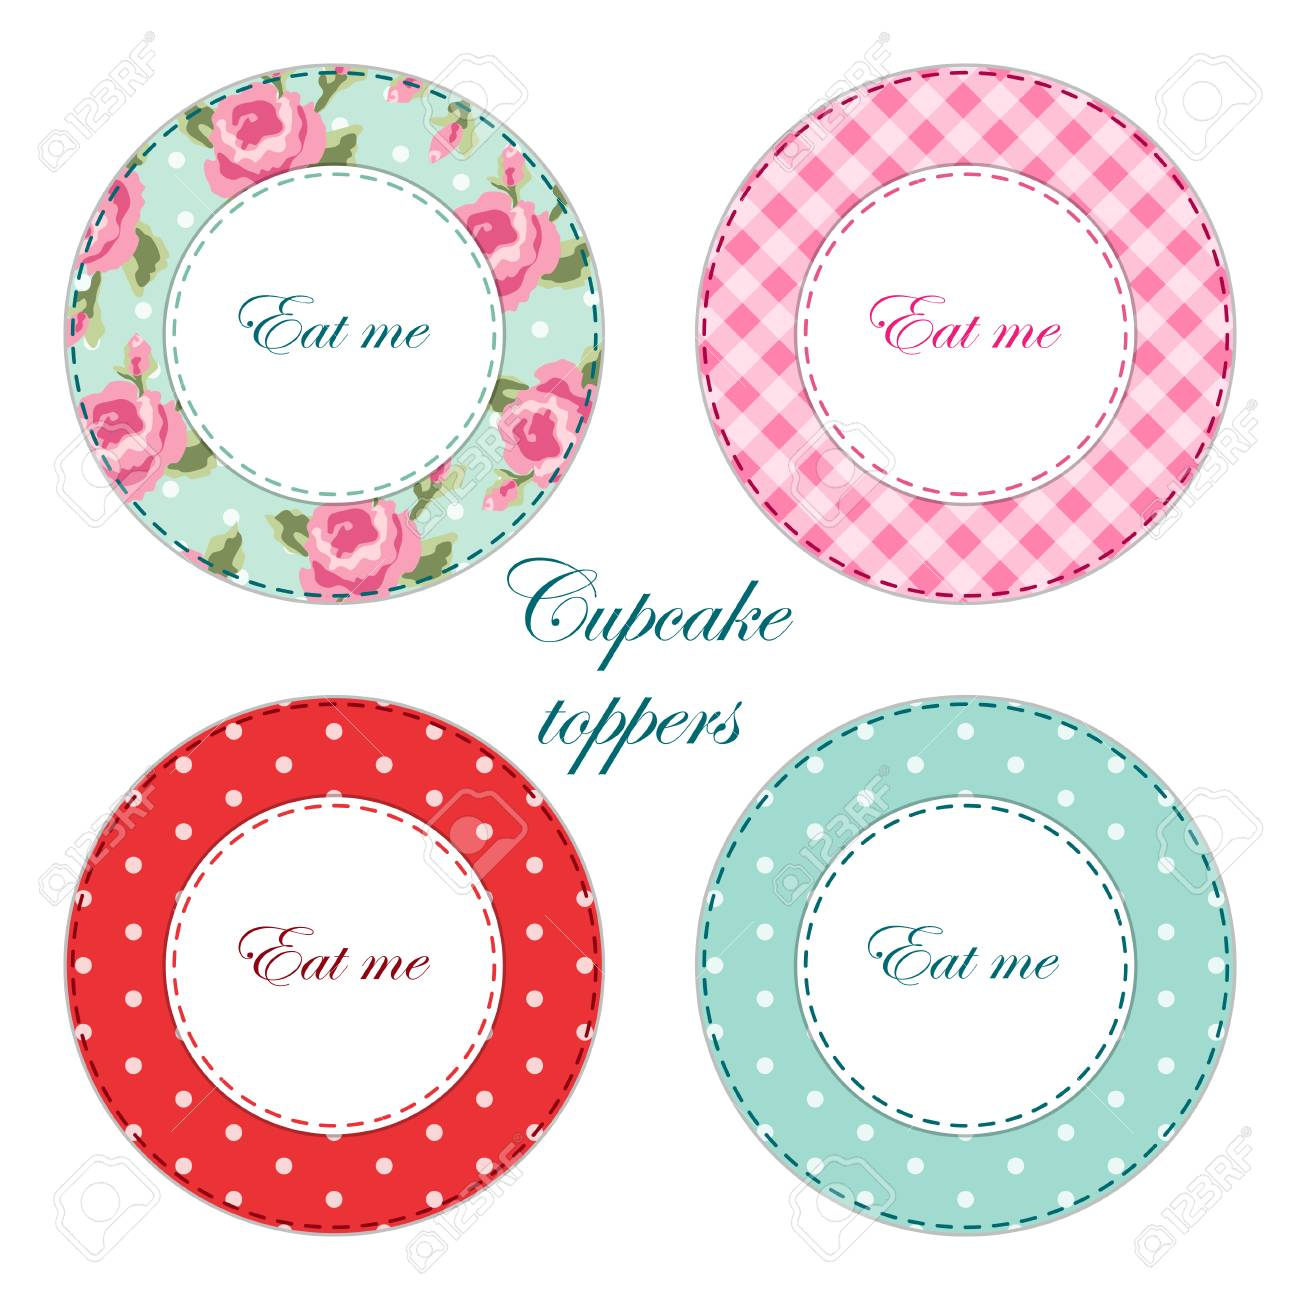 Tea Party Printables As Labelscupcake Toppers Or Tags In Shabby Chic Style Stock